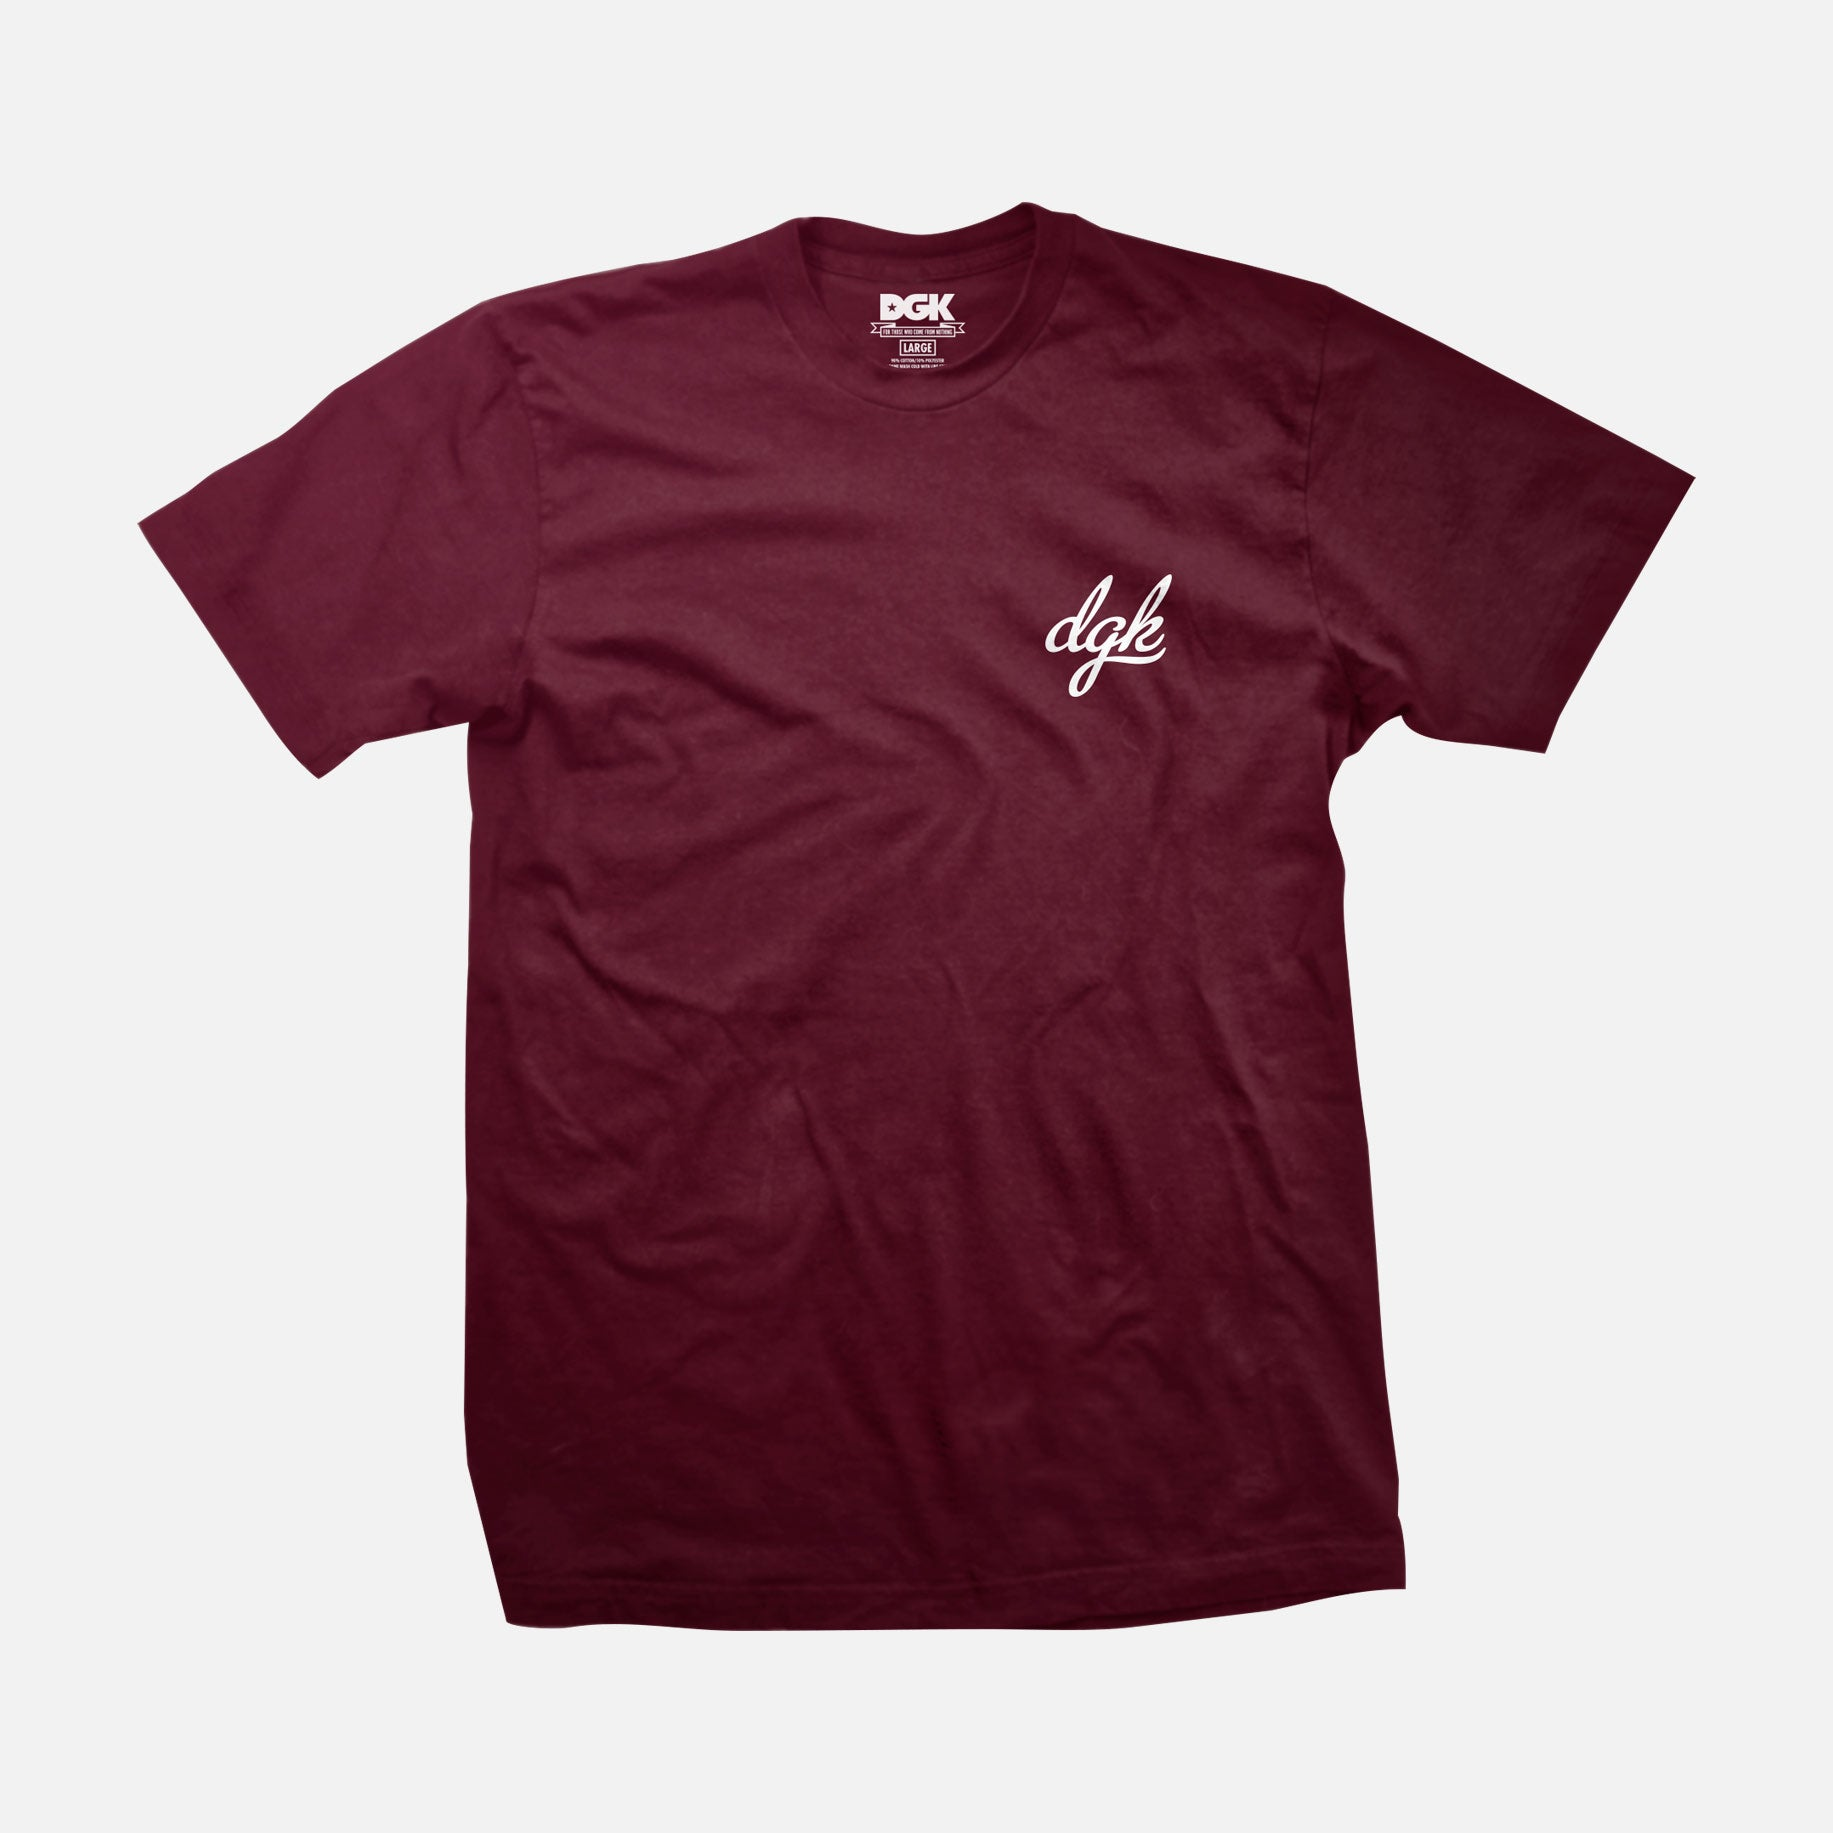 DGK Mini Script T-Shirt Burgundy